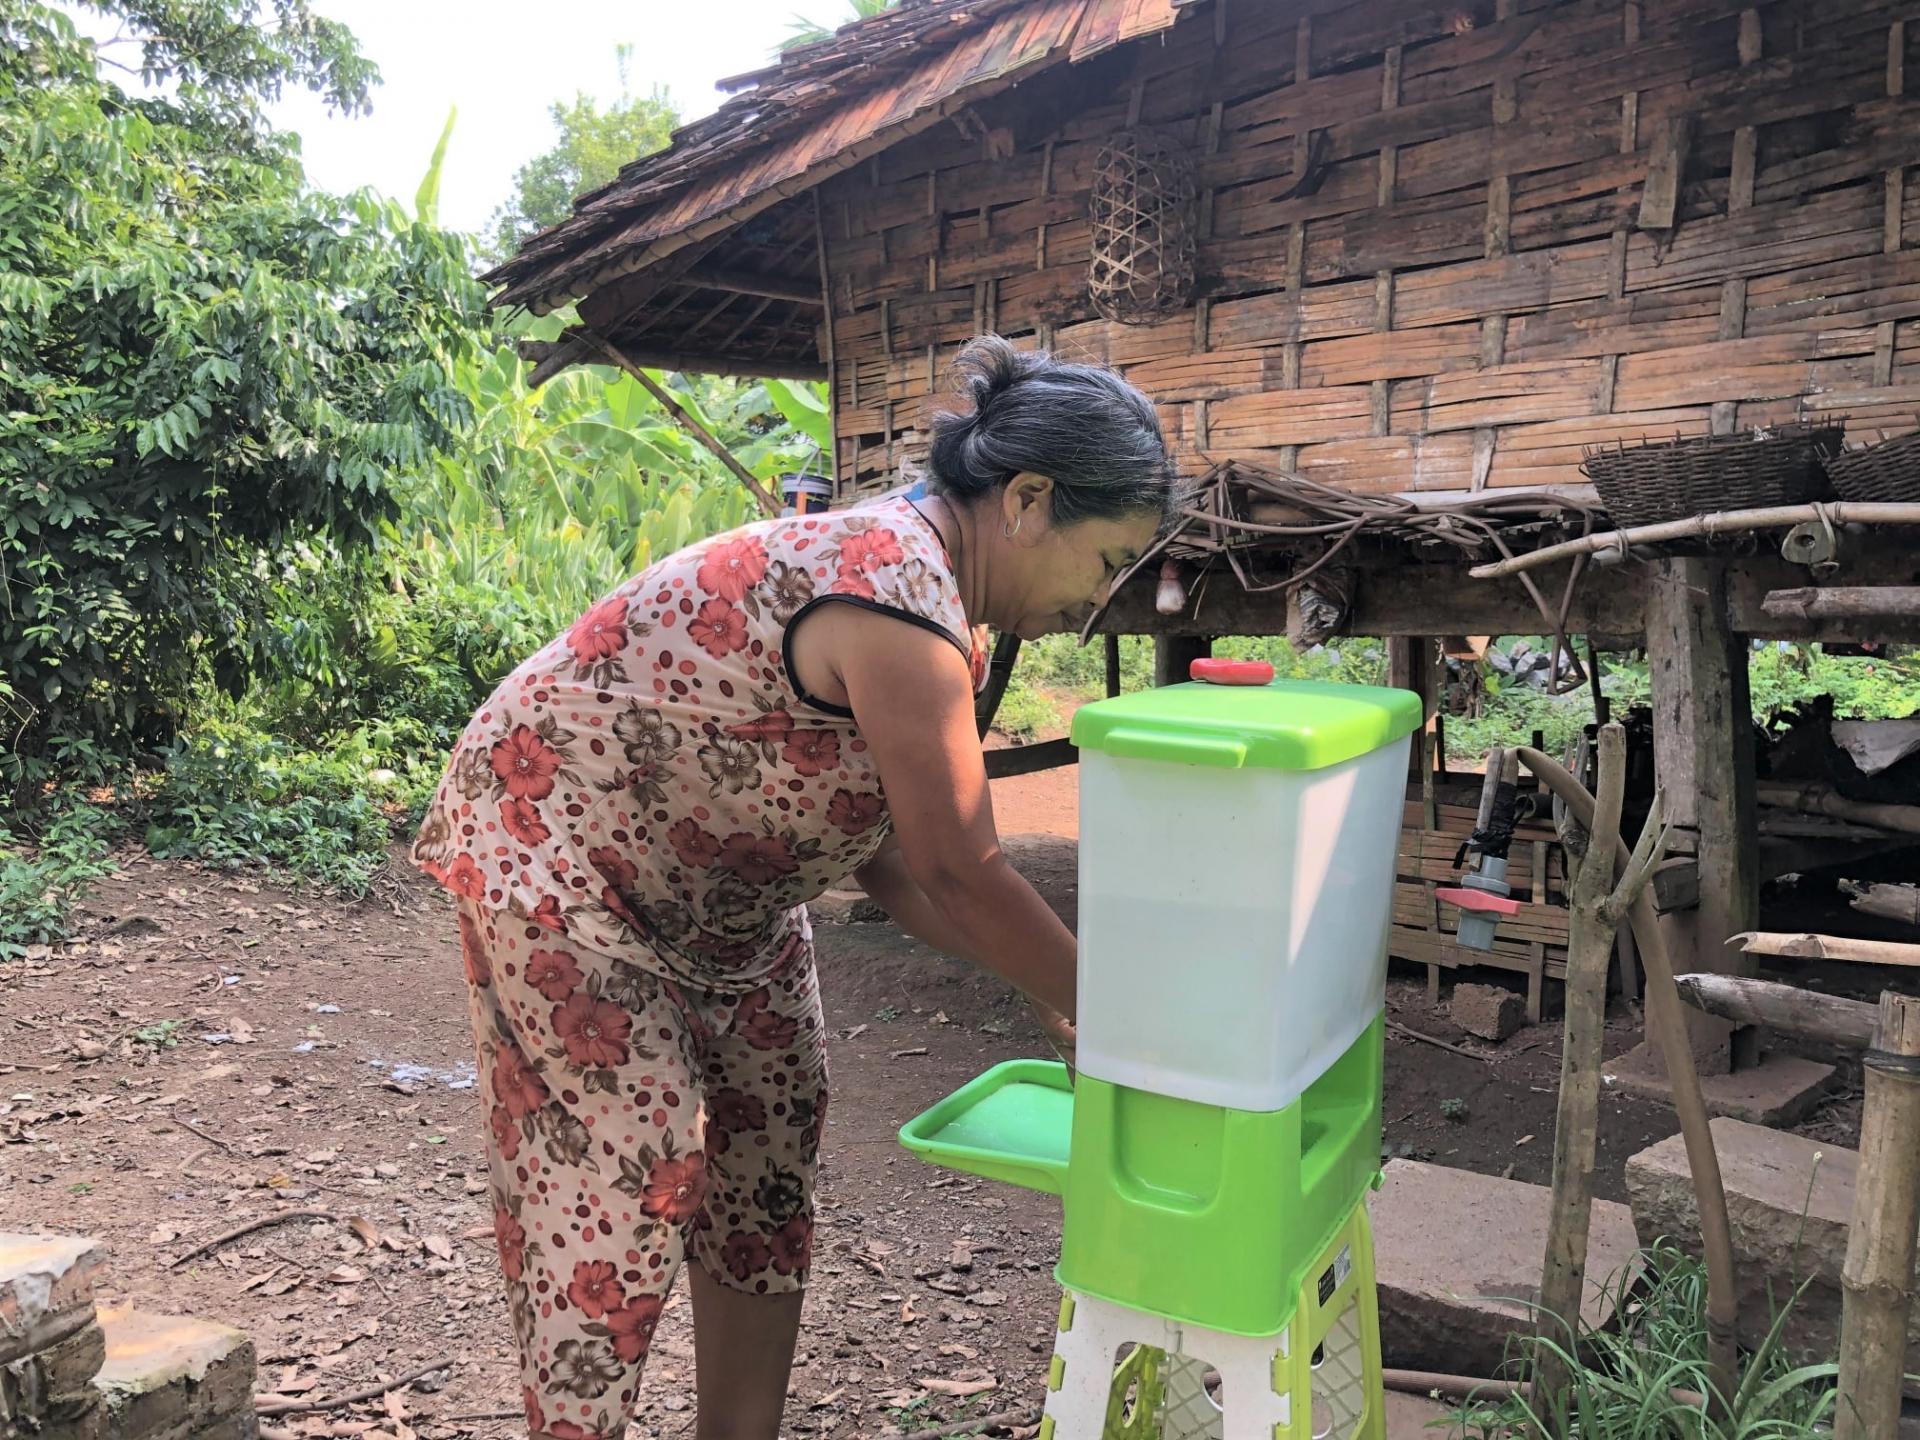 emw supports equitable access to water hygiene and sanitation for vulnerable families